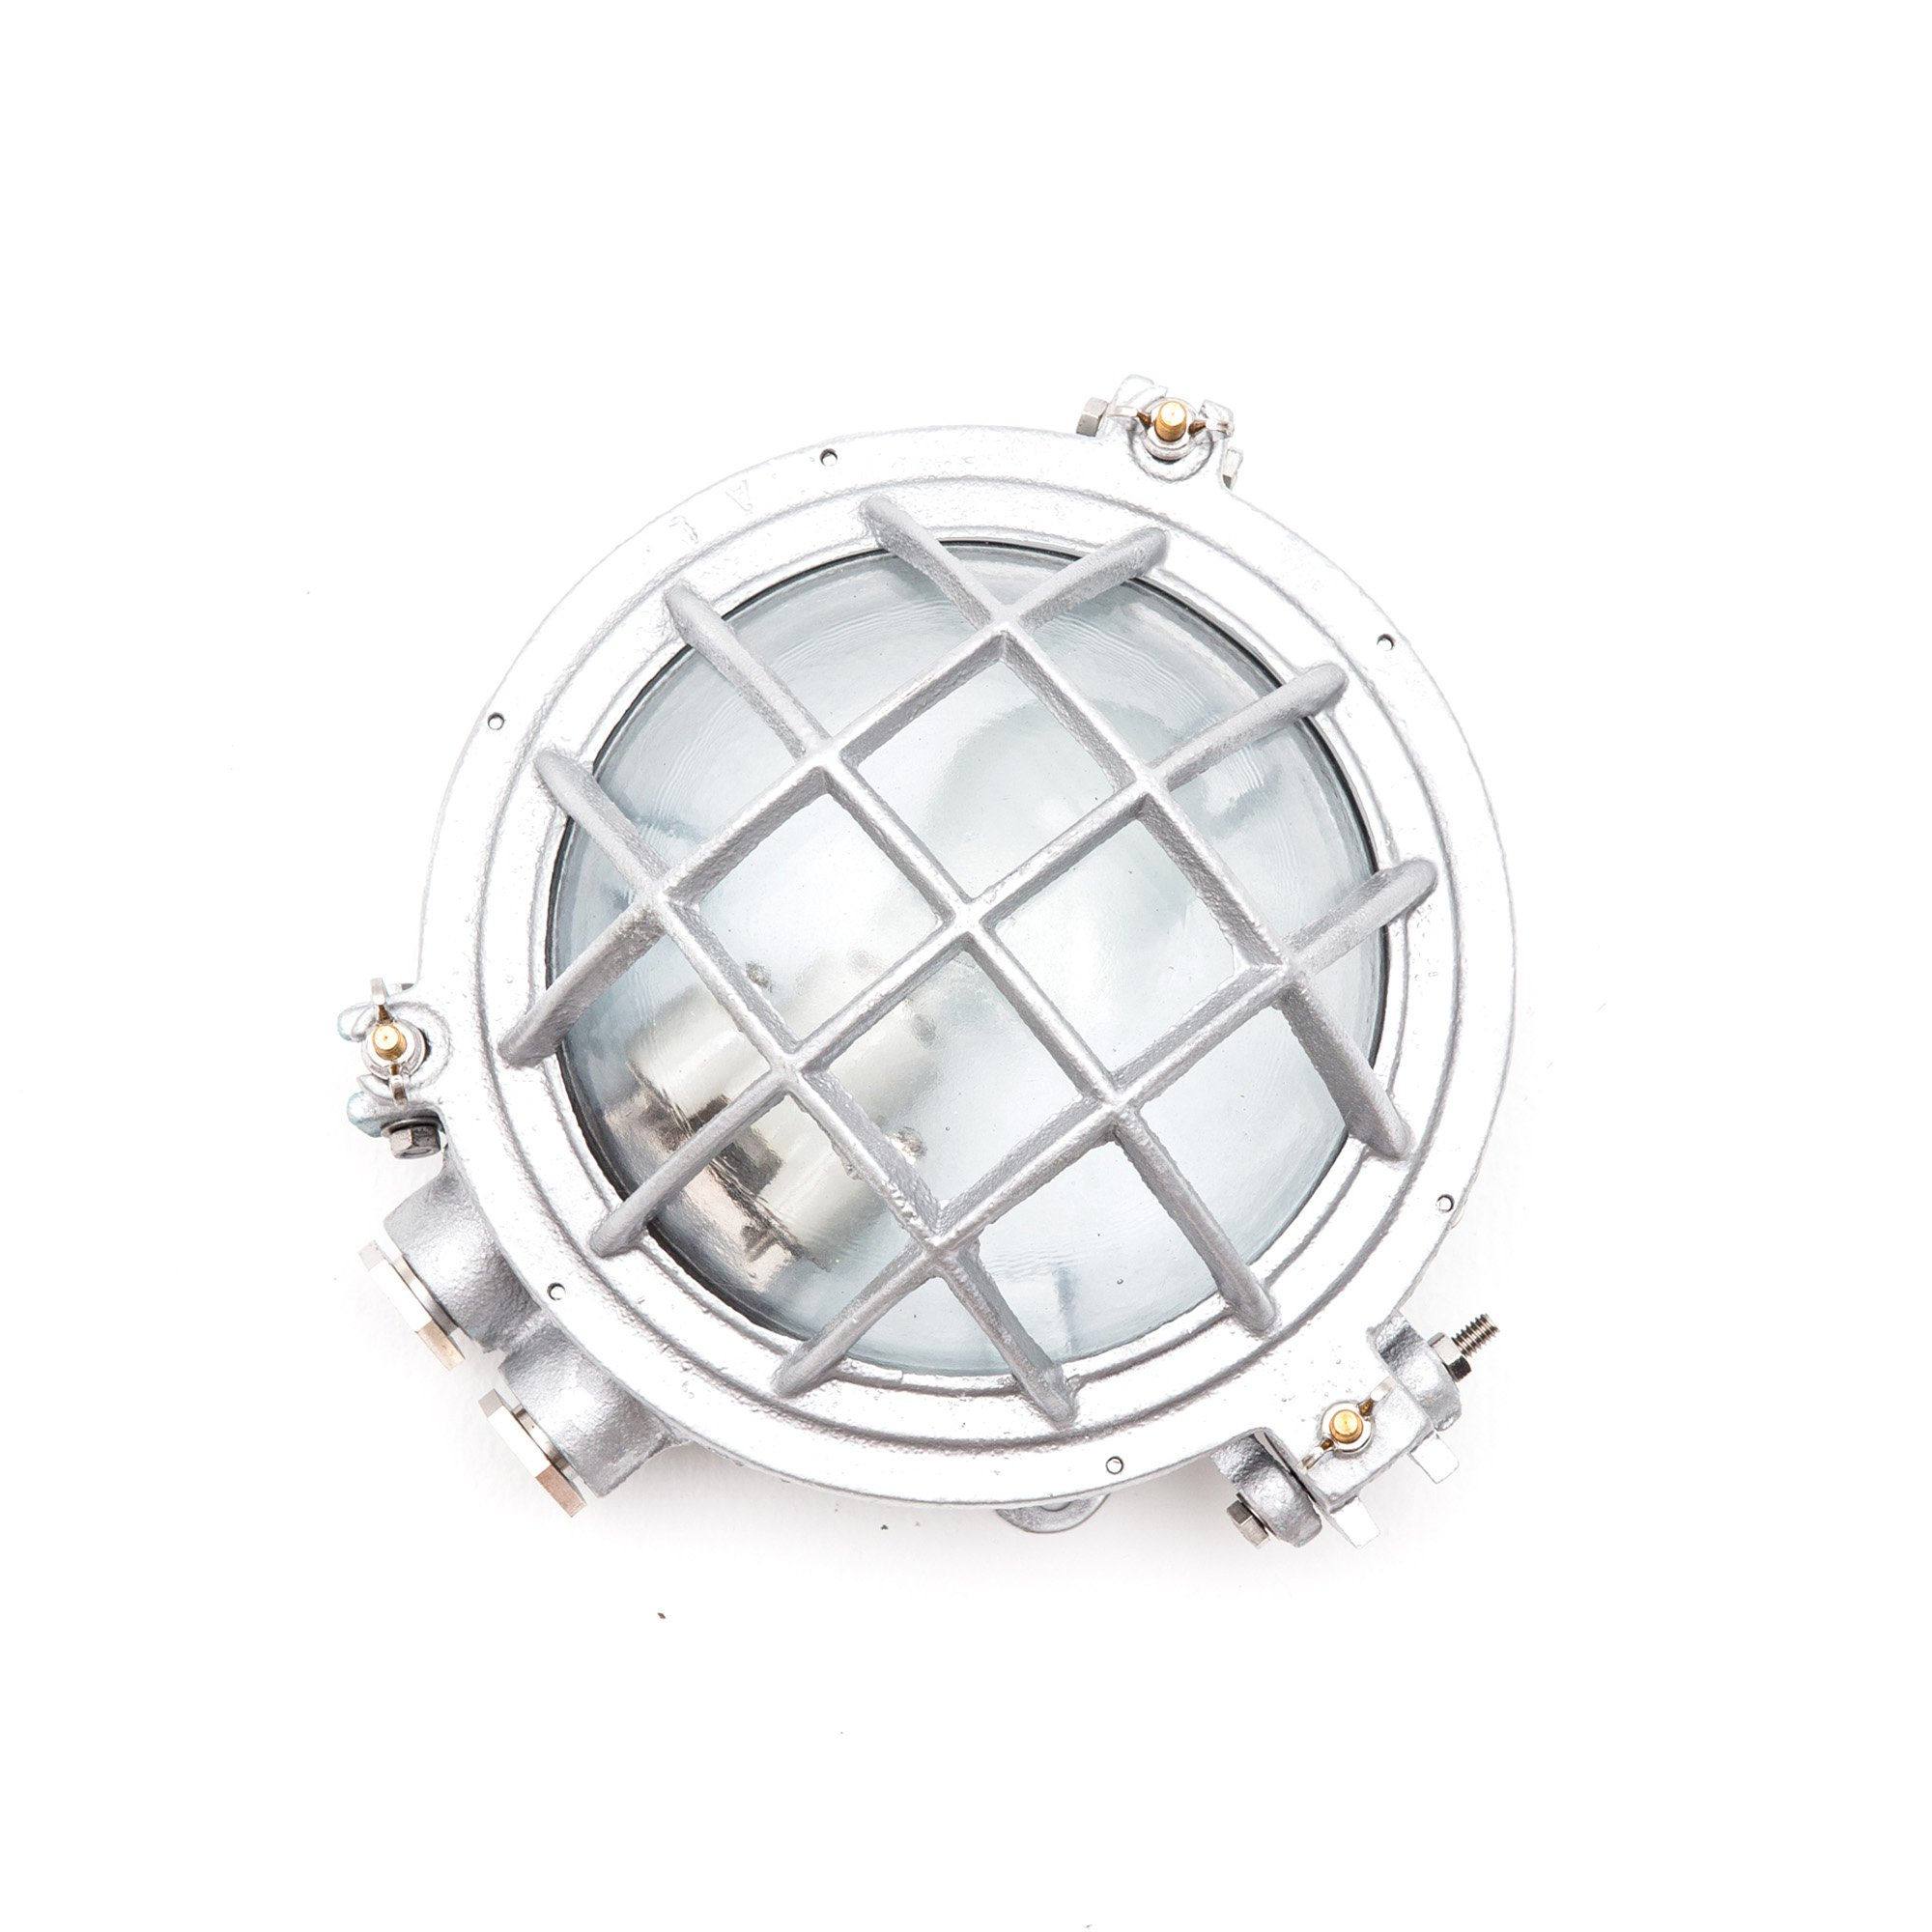 Cocoweb Temora Bulkhead Wall Sconce | LED Light Bulb Included | with Exposed Hardware Cage Design … (Silver)